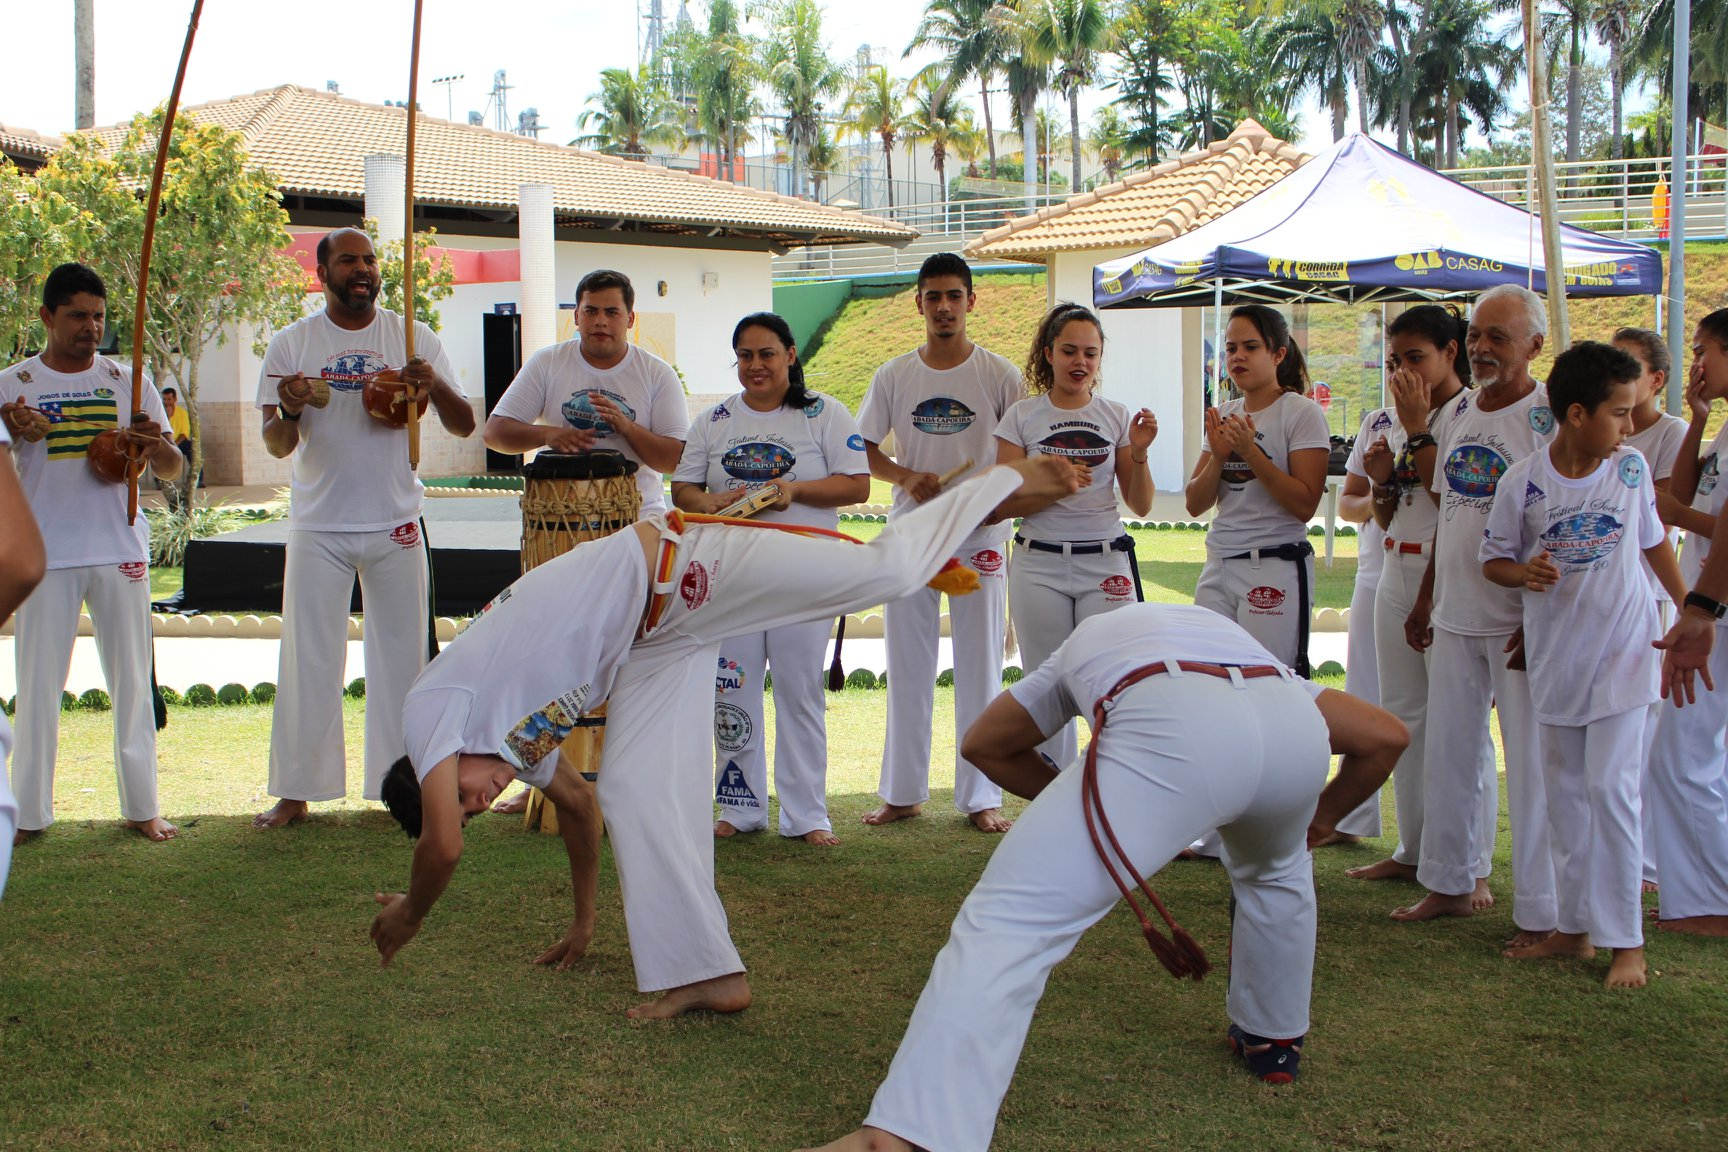 Capoeira inclusiva e evento de motociclismo movimentaram final de semana no CEL